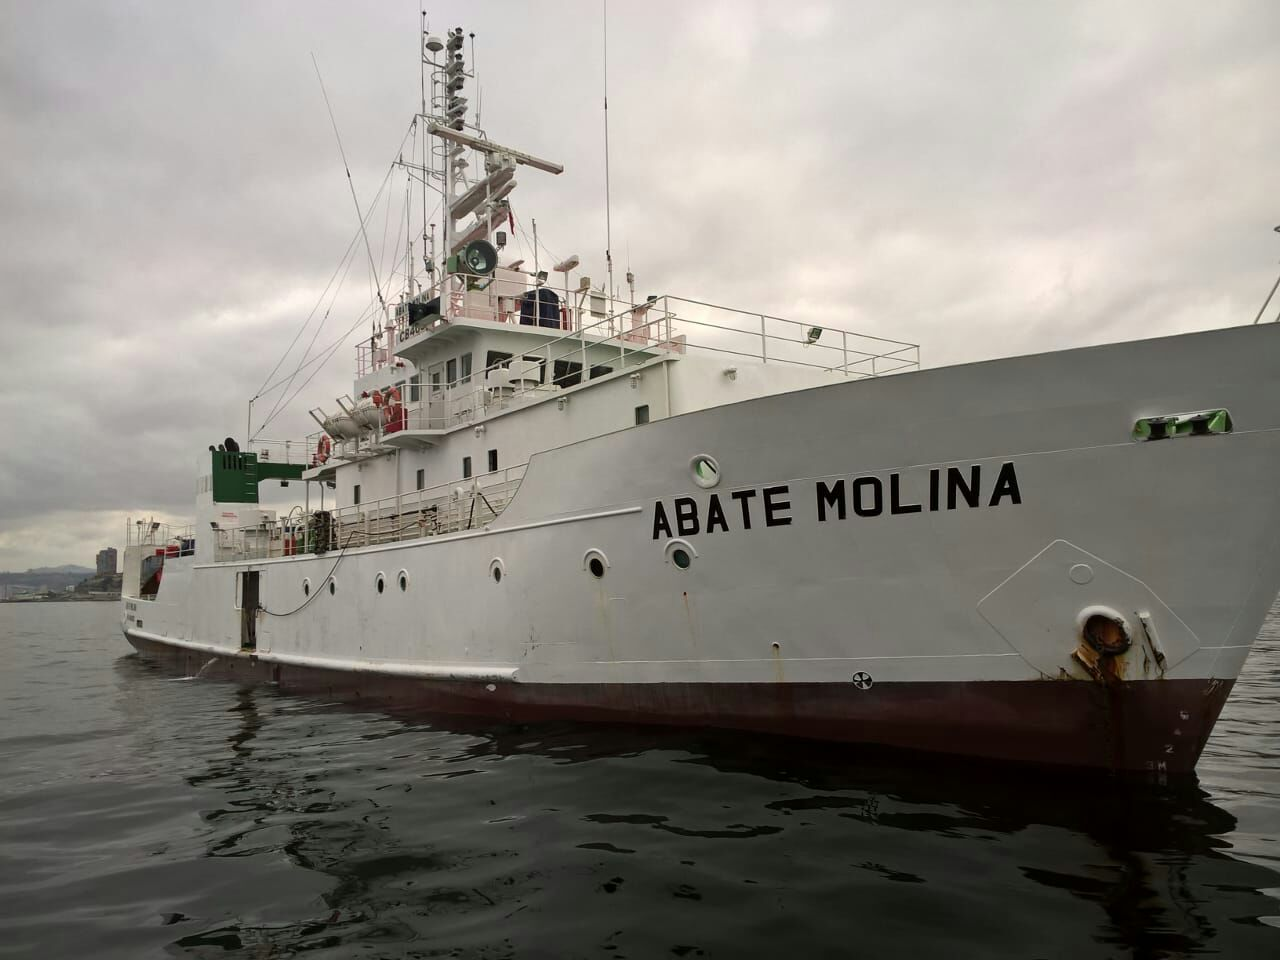 Abate Molina set sail to investigate anchoveta current state